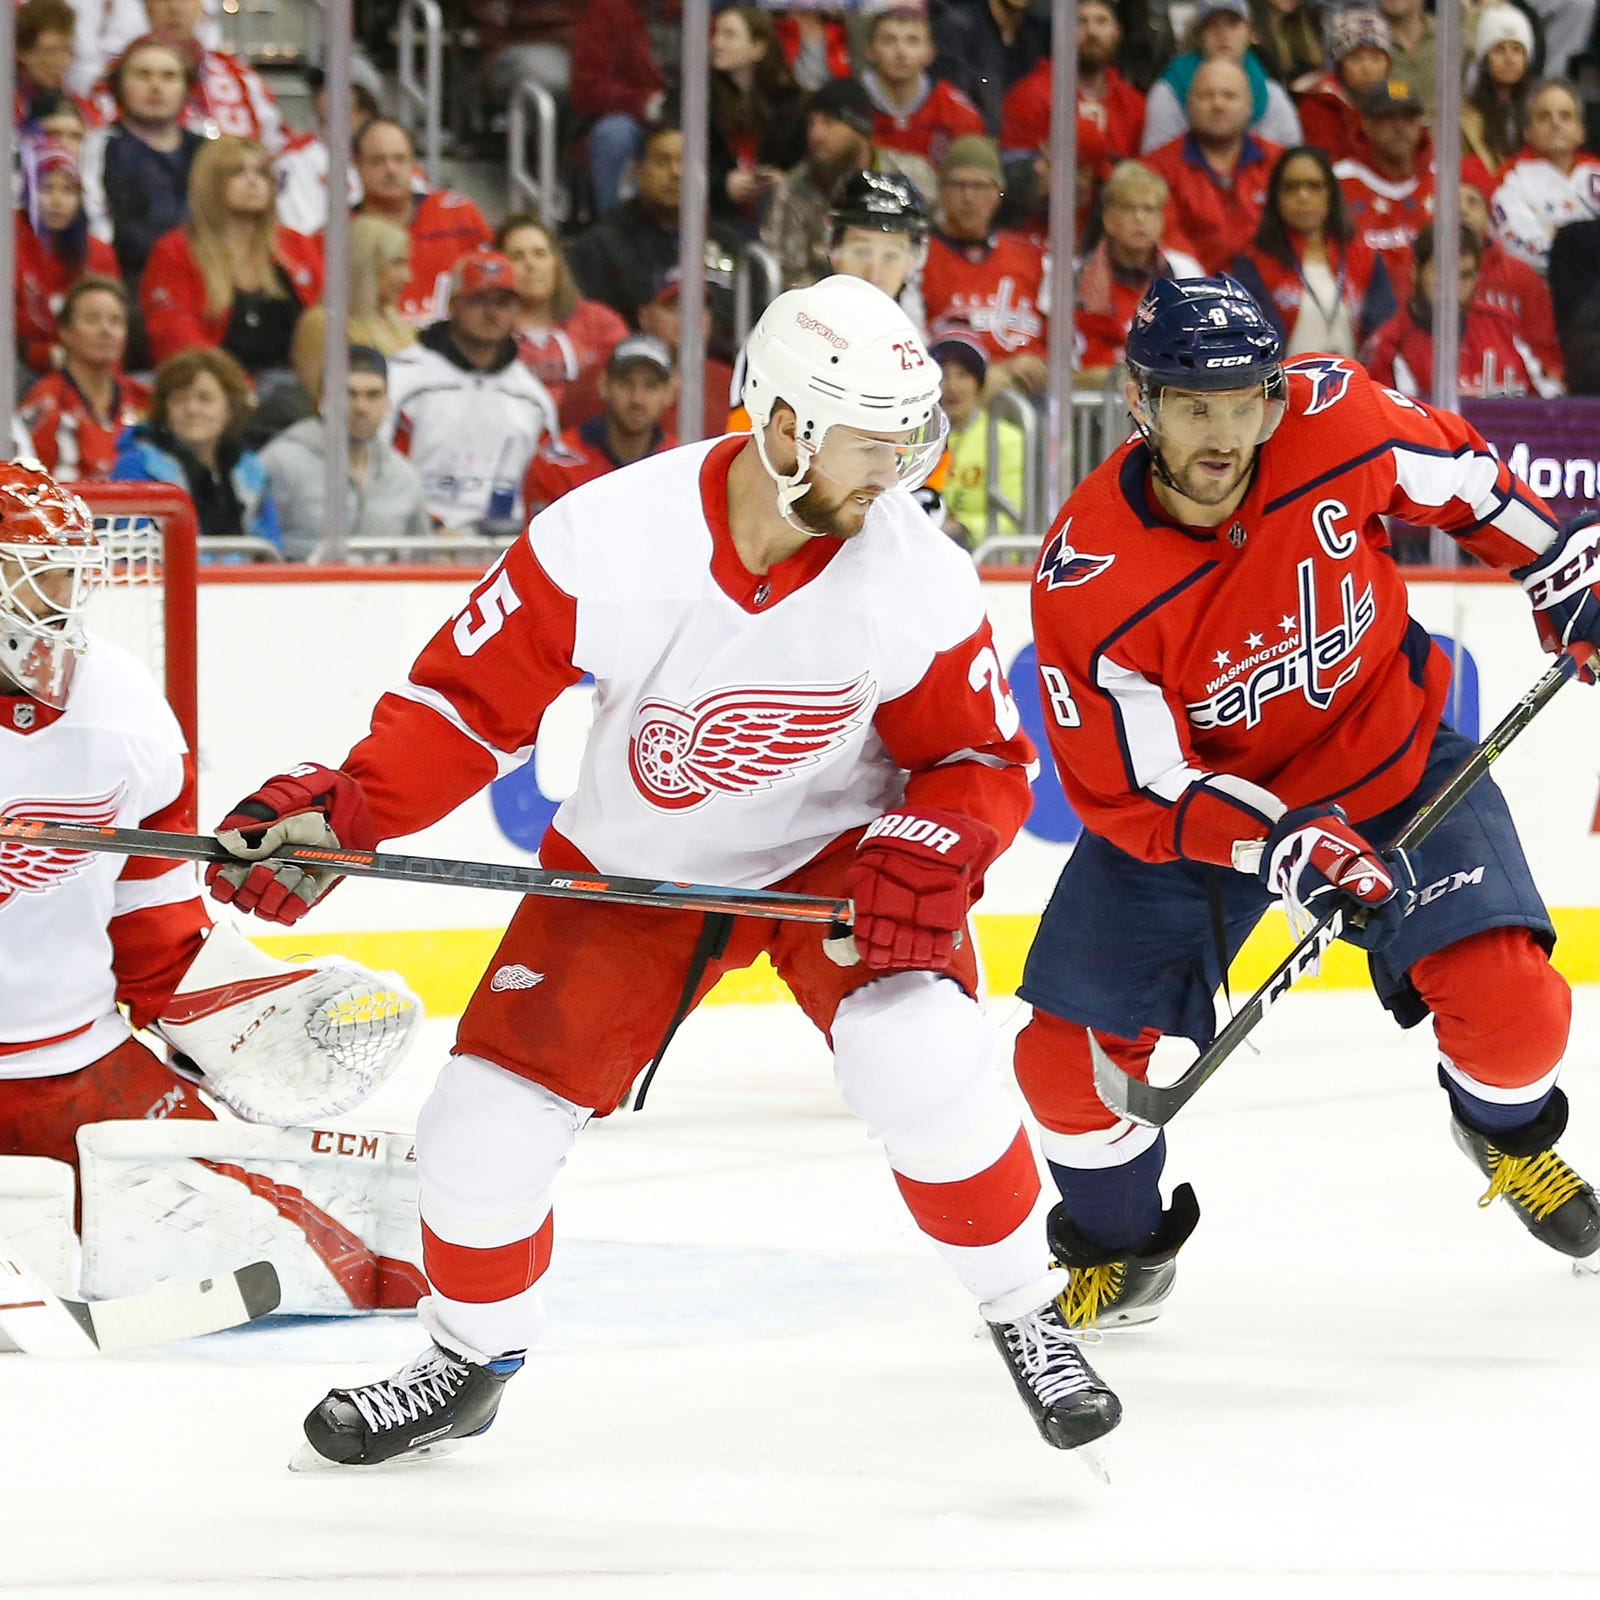 Capitals left wing Alex Ovechkin and Red Wings defenseman Mike Green battle for the puck in front of Red Wings goaltender Jonathan Bernier in the first period at Capital One Arena, Nov. 23, 2018. The Caps won, 3-1.